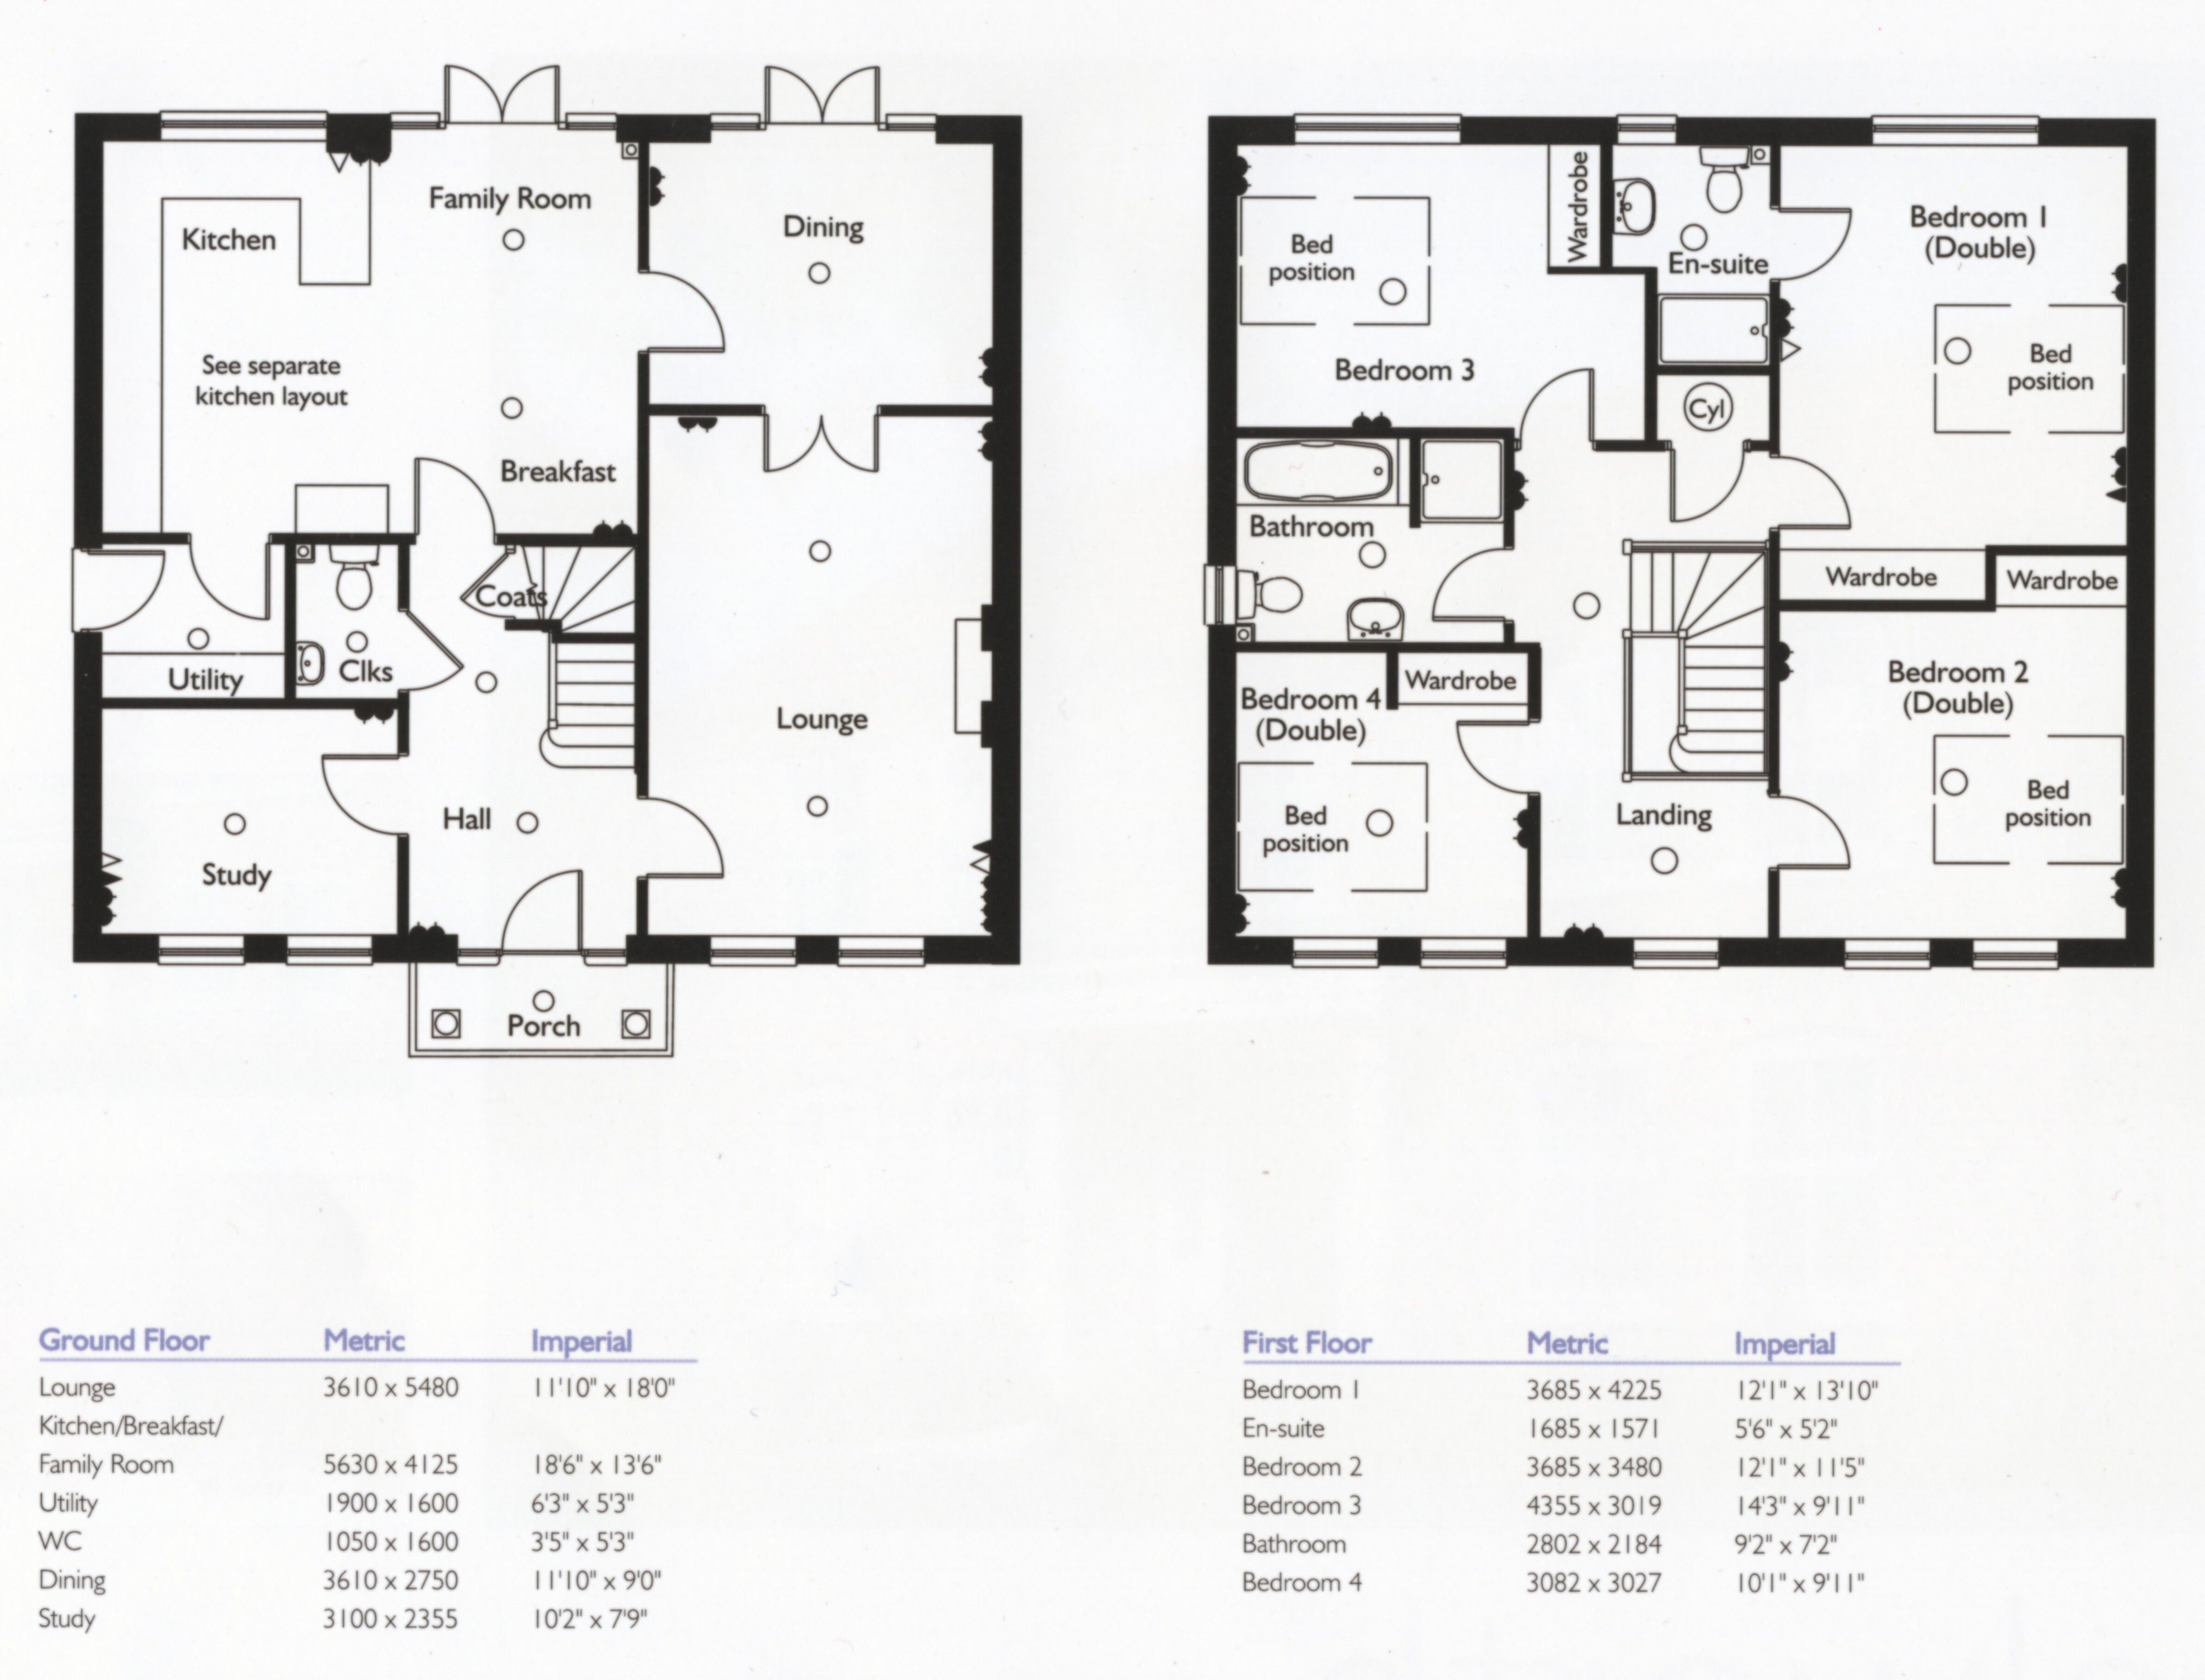 bianchi family house floor plans bedroom ideas new house